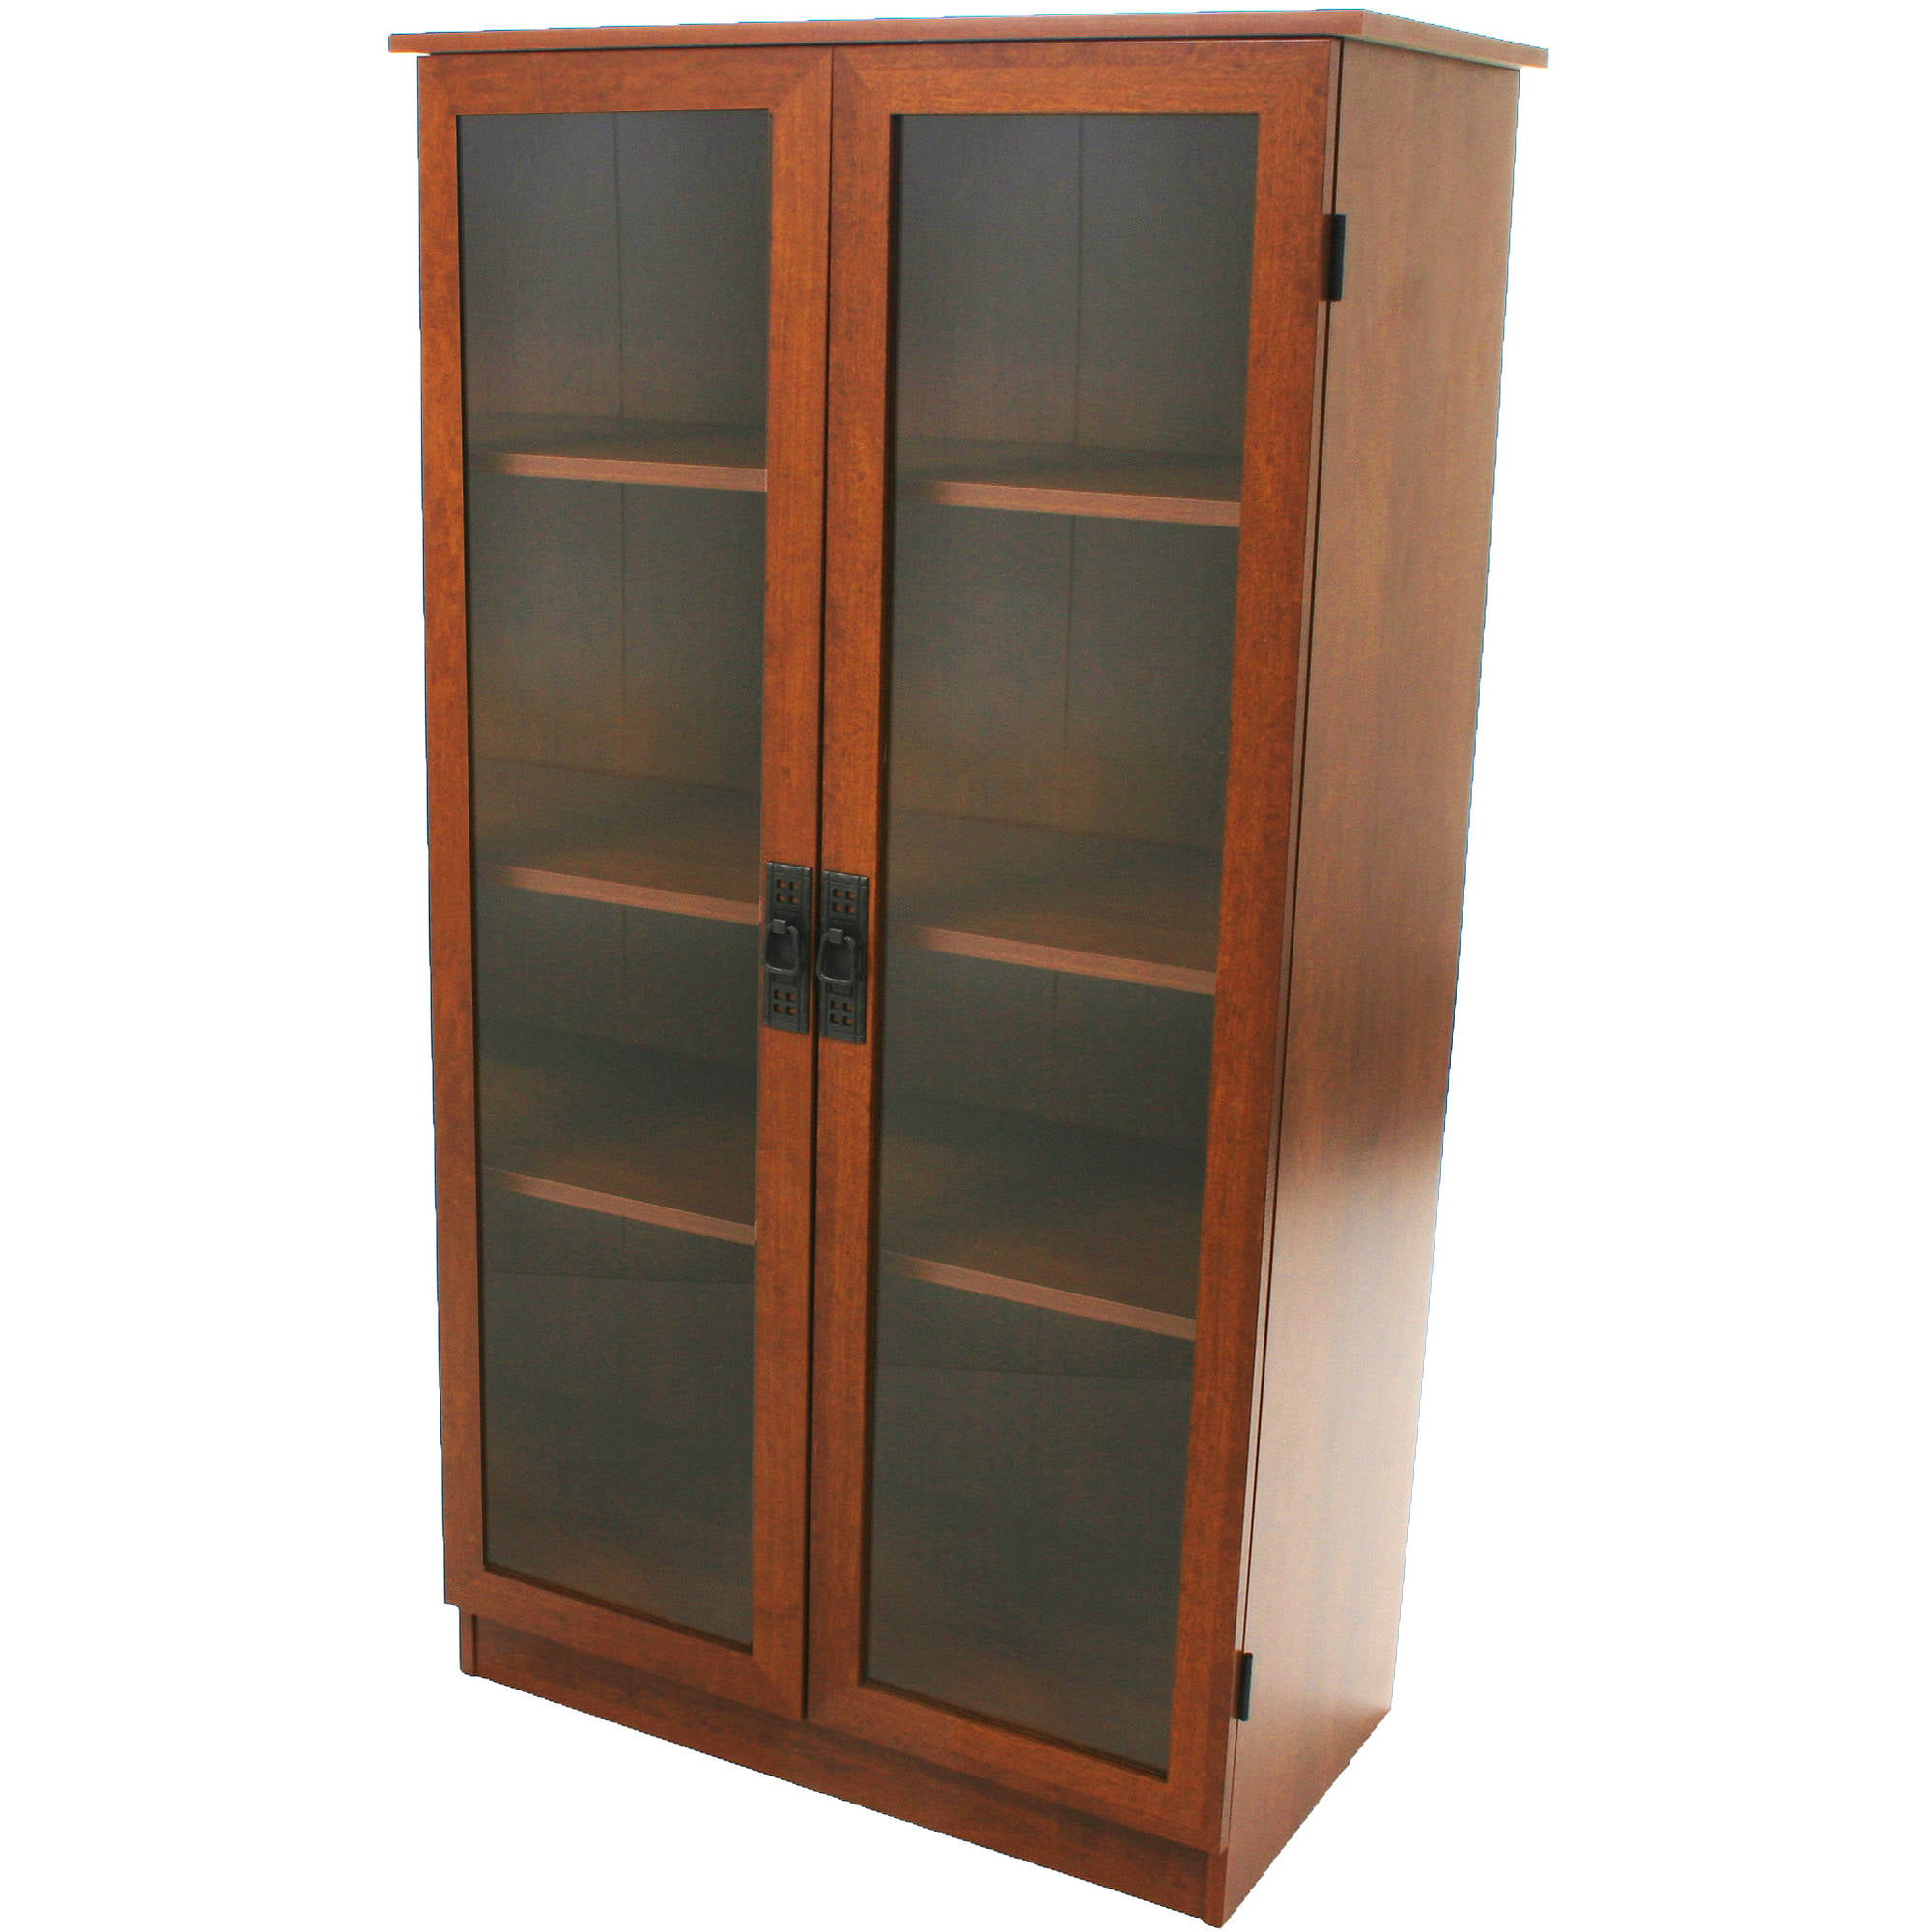 Heirloom Storage Cabinet with 4 Shelves Multiple Finishes Walmartcom